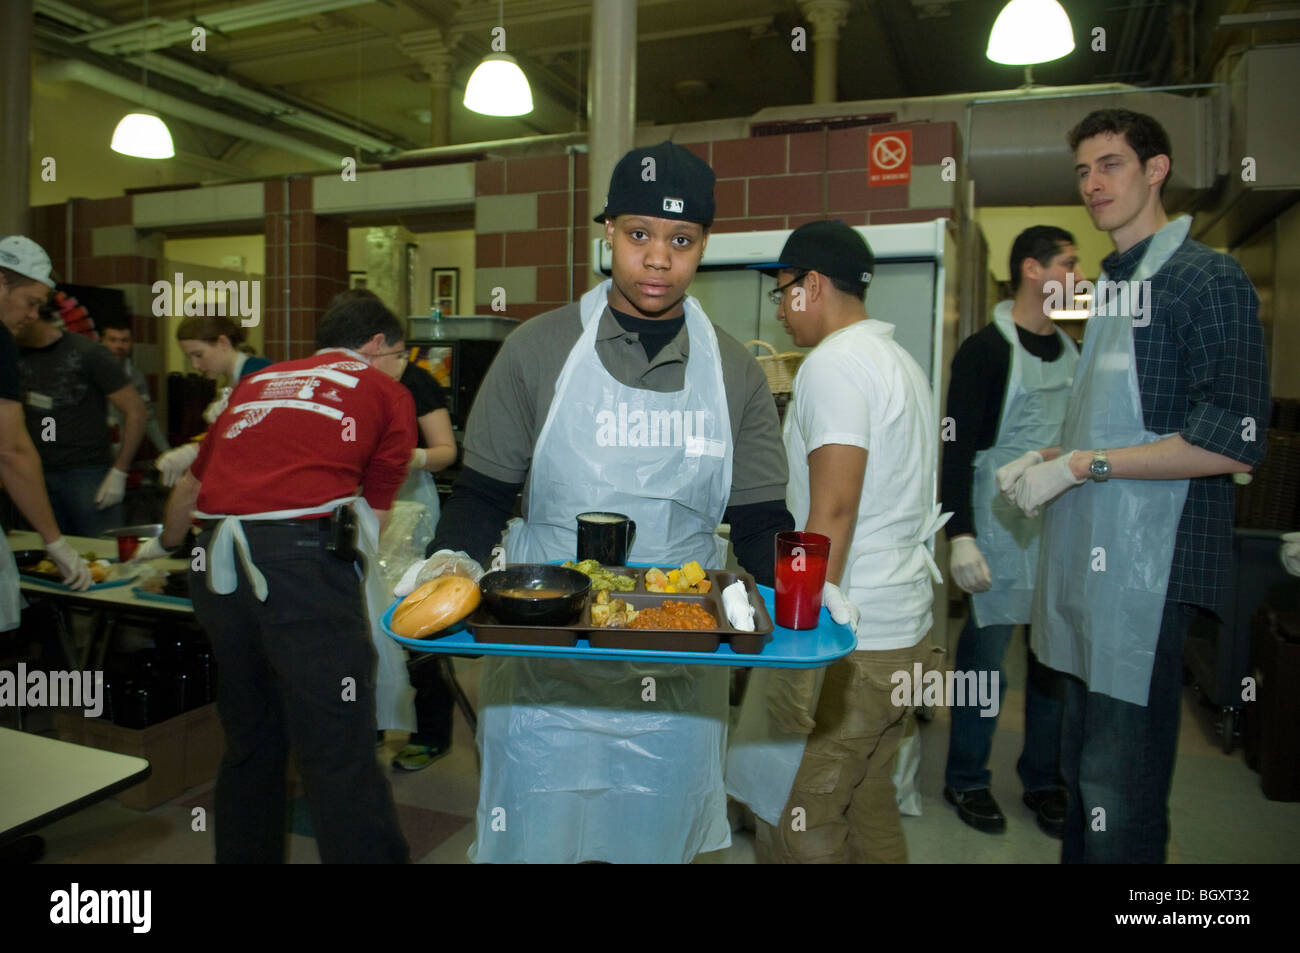 volunteers serve sunday lunch at the st. francis xavier mission's